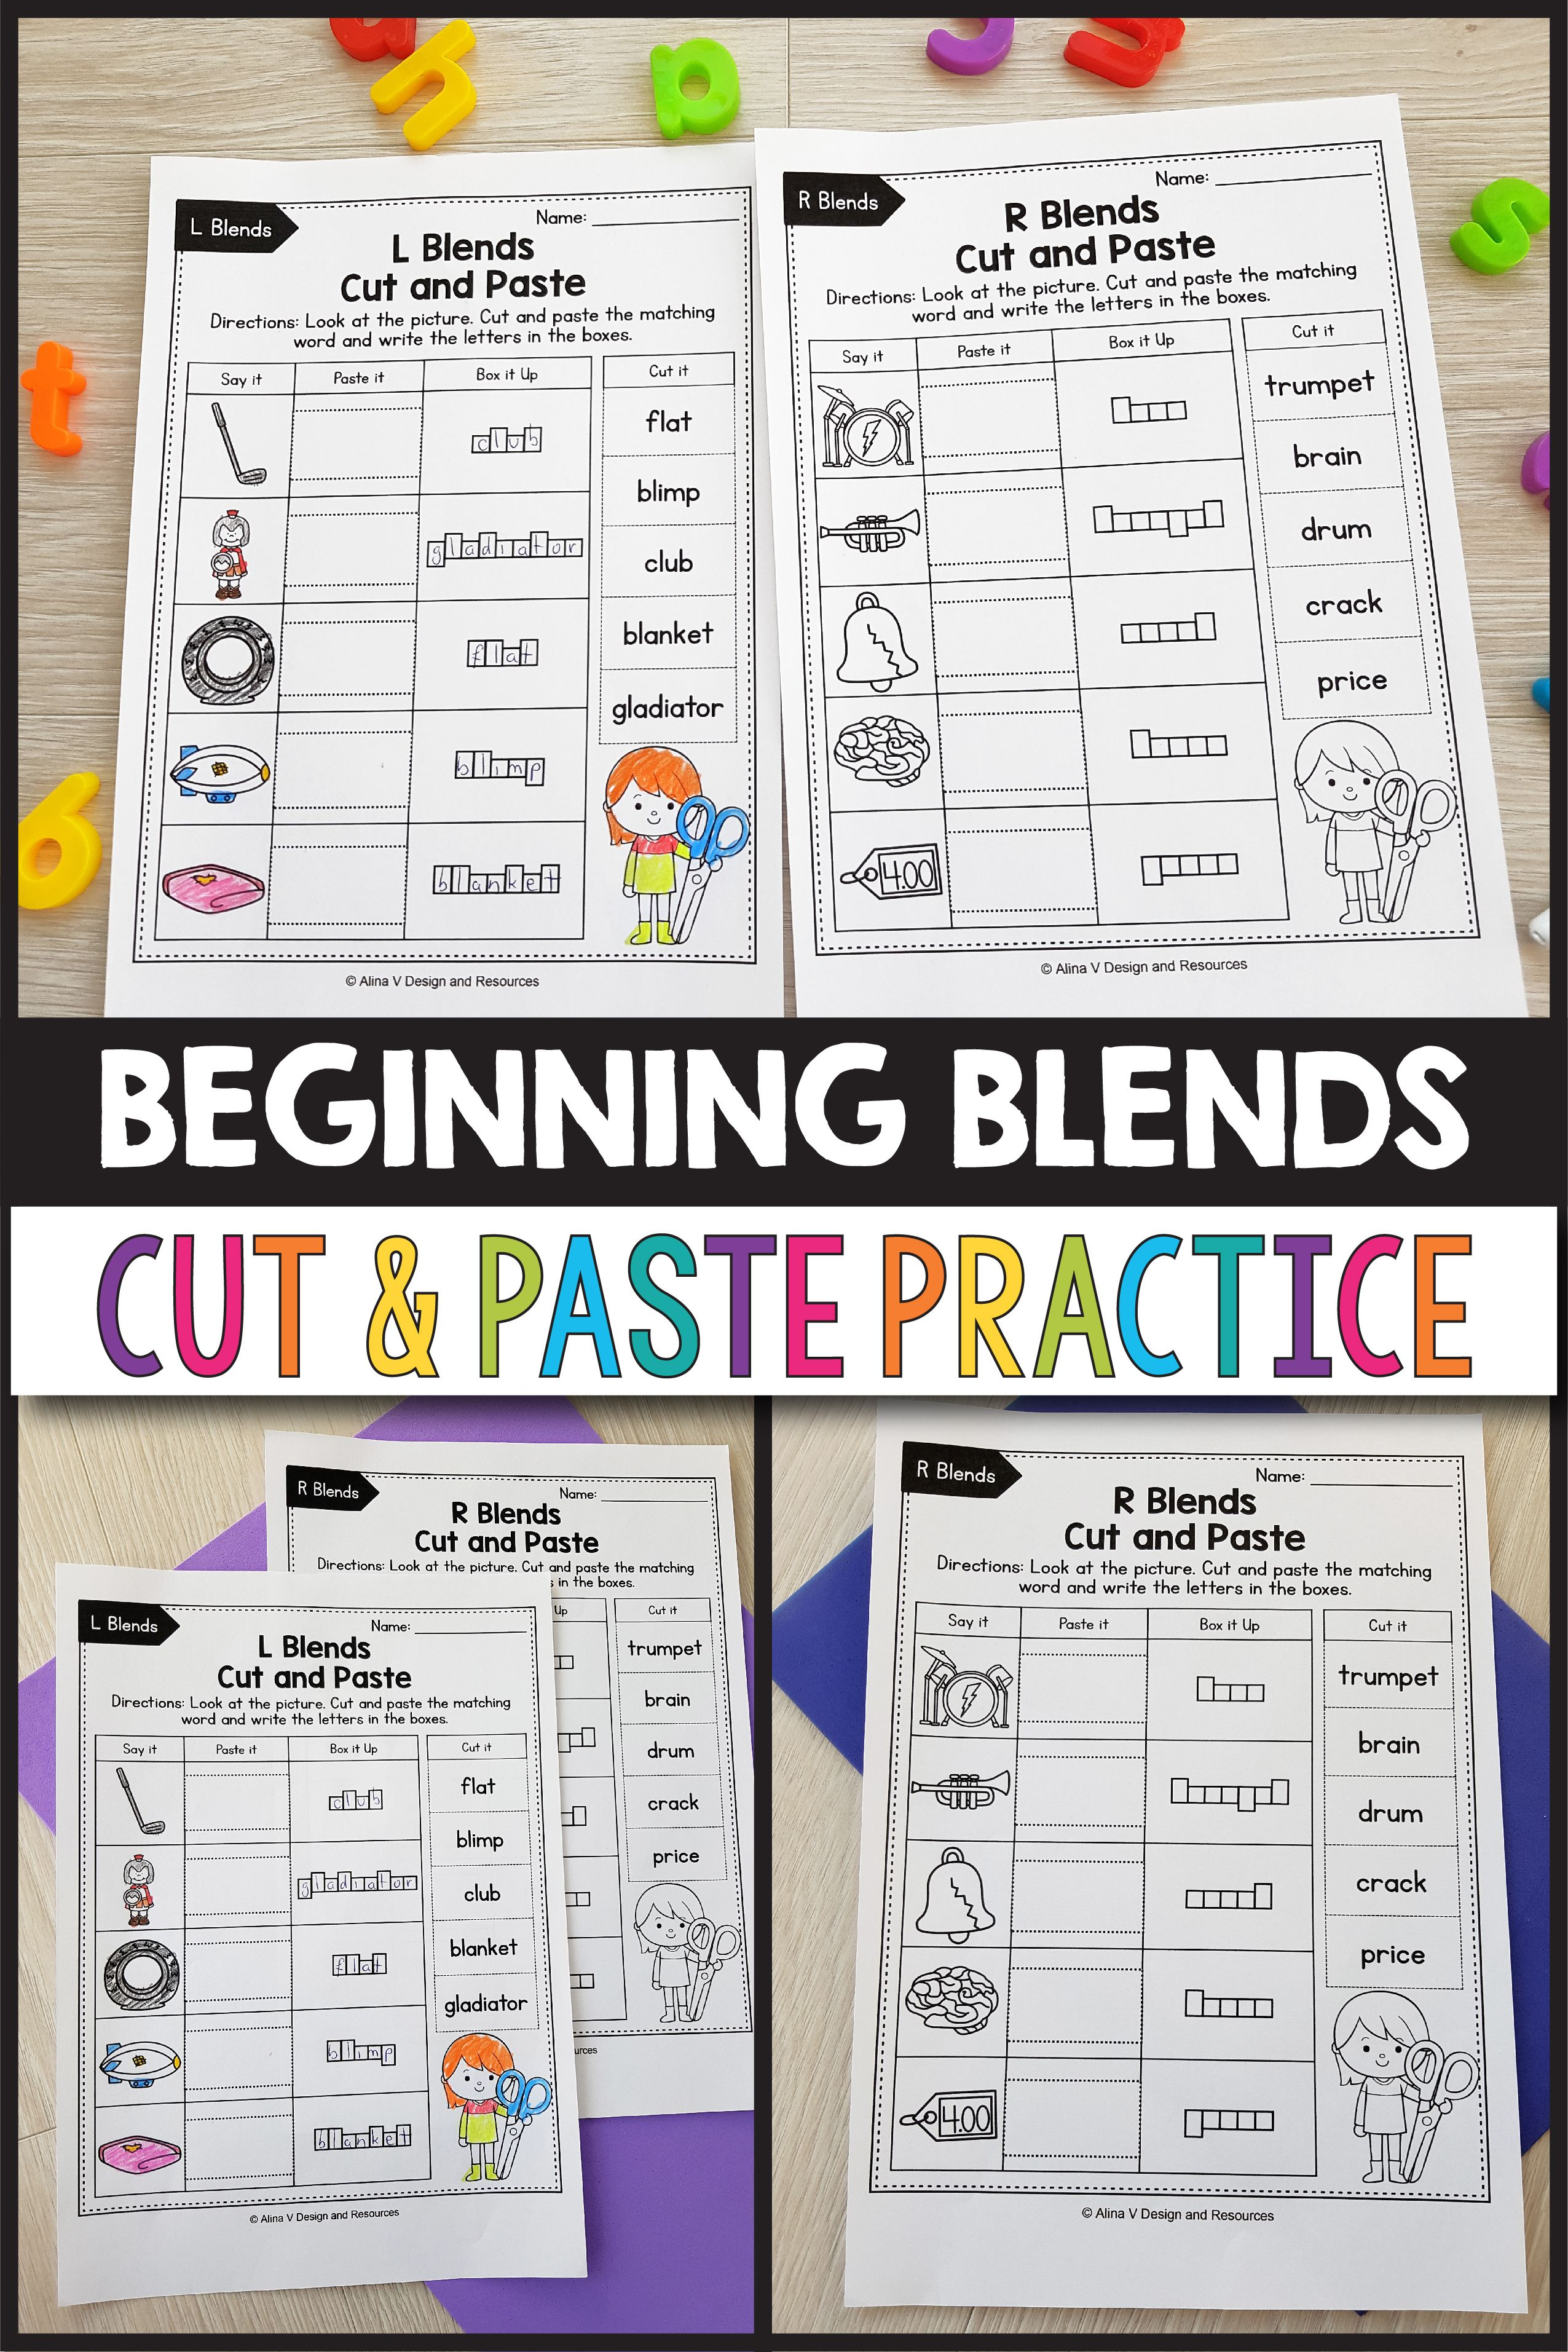 Beginning Blends Say Paste Box It Up Activities These Worksheets For Kindergarten And A Great Phonics Activities Blends Activities Kindergarten Resources [ 3826 x 2551 Pixel ]